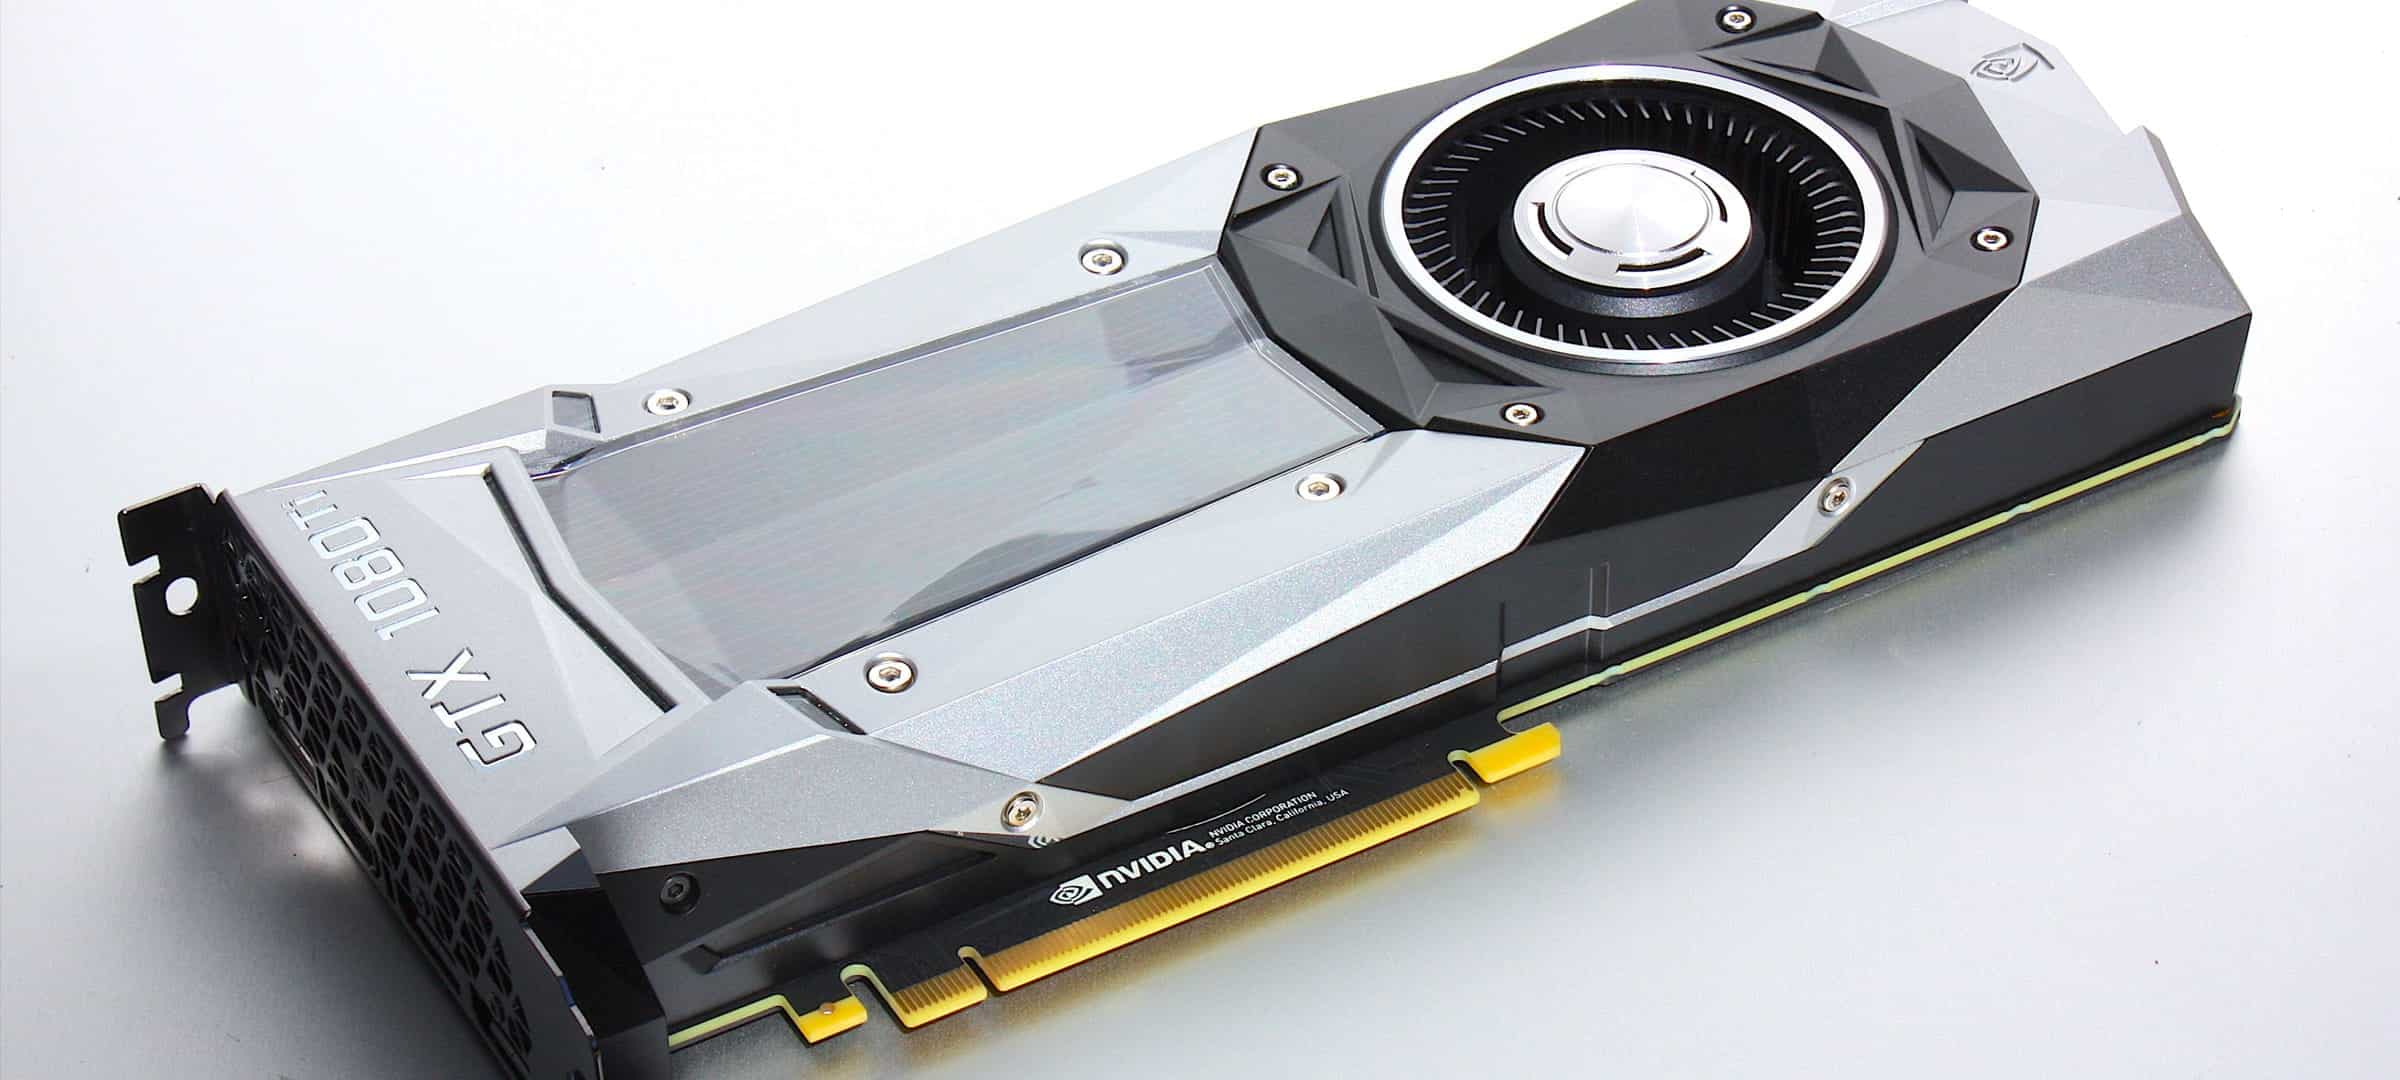 Mining Rig Builders Enjoy GPU Price Decline